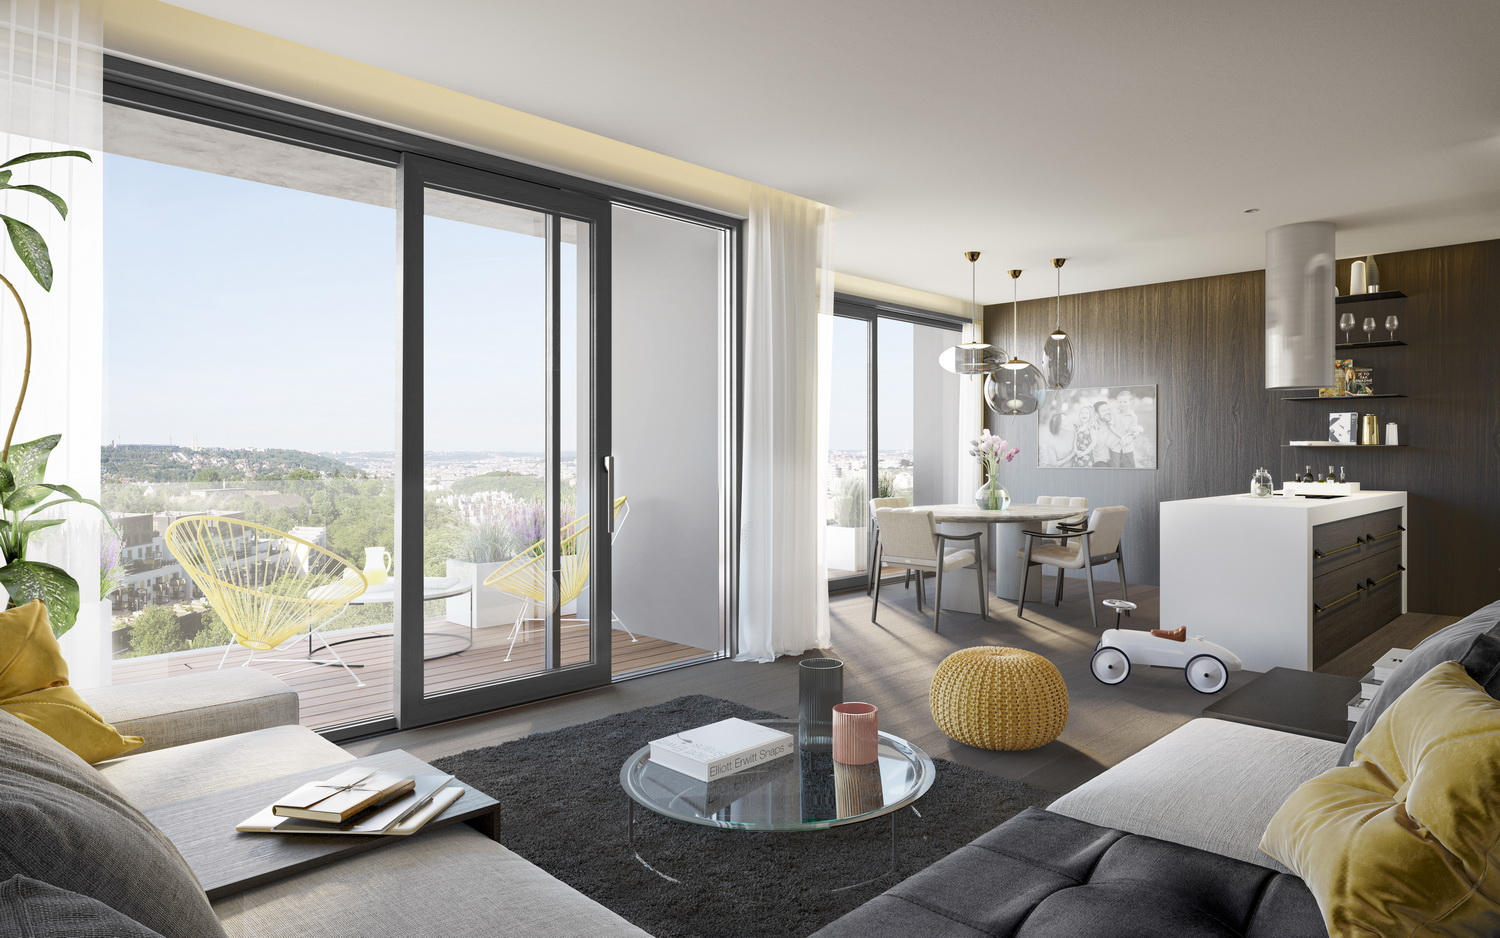 WIN A LUXURY FLAT IN PRAGUE